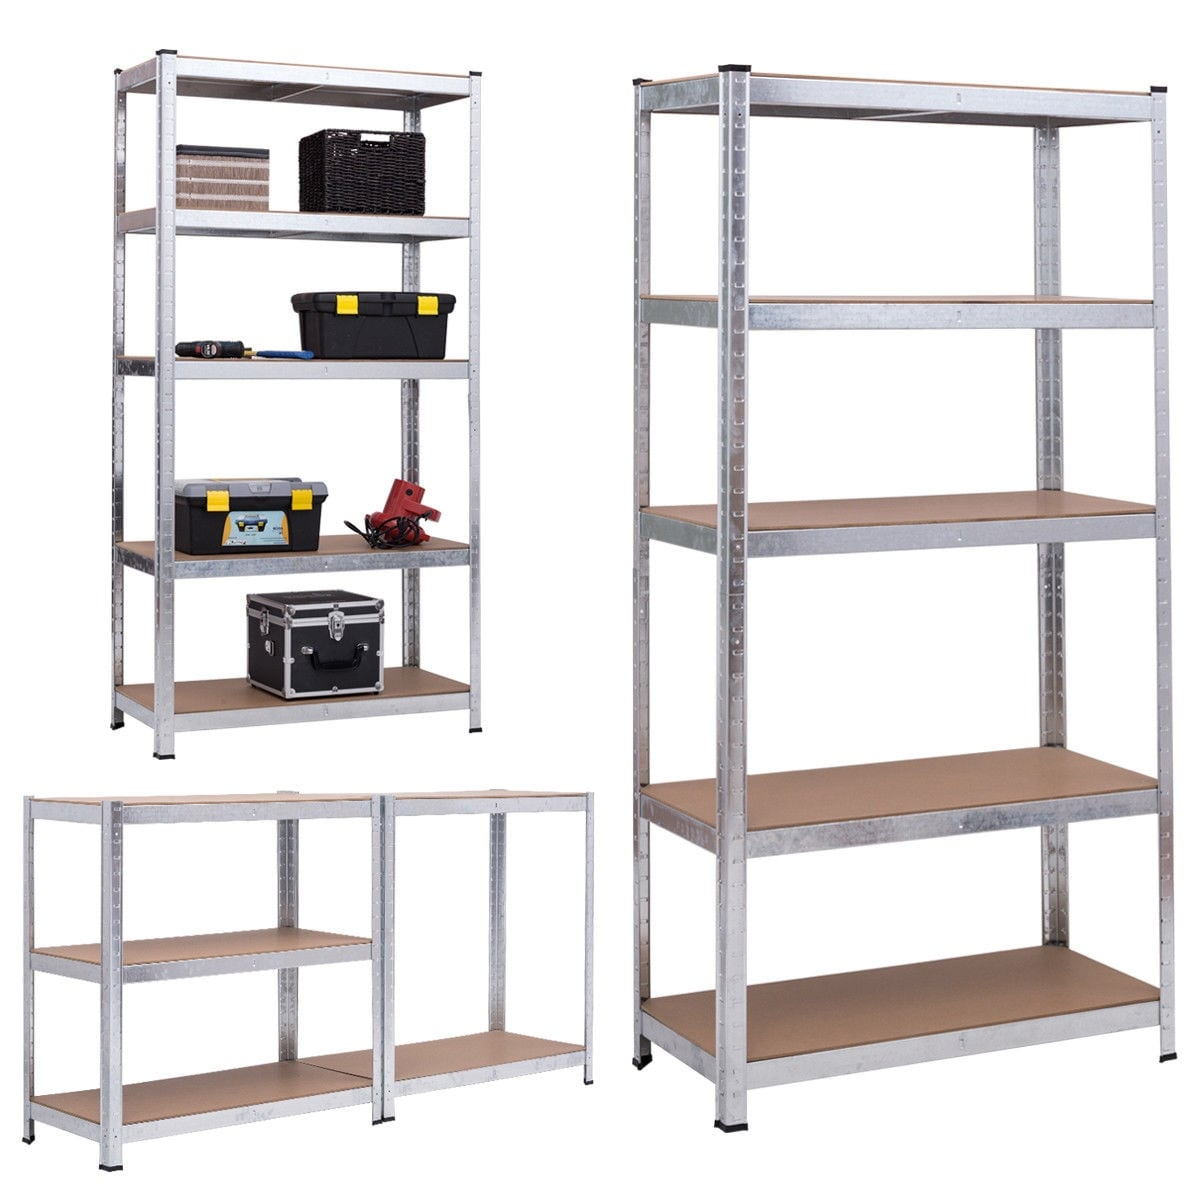 shop gymax 71 heavy duty storage shelf steel metal garage rack 5 level adjustable shelves as pic on sale free shipping today overstockcom - Heavy Duty Storage Shelves